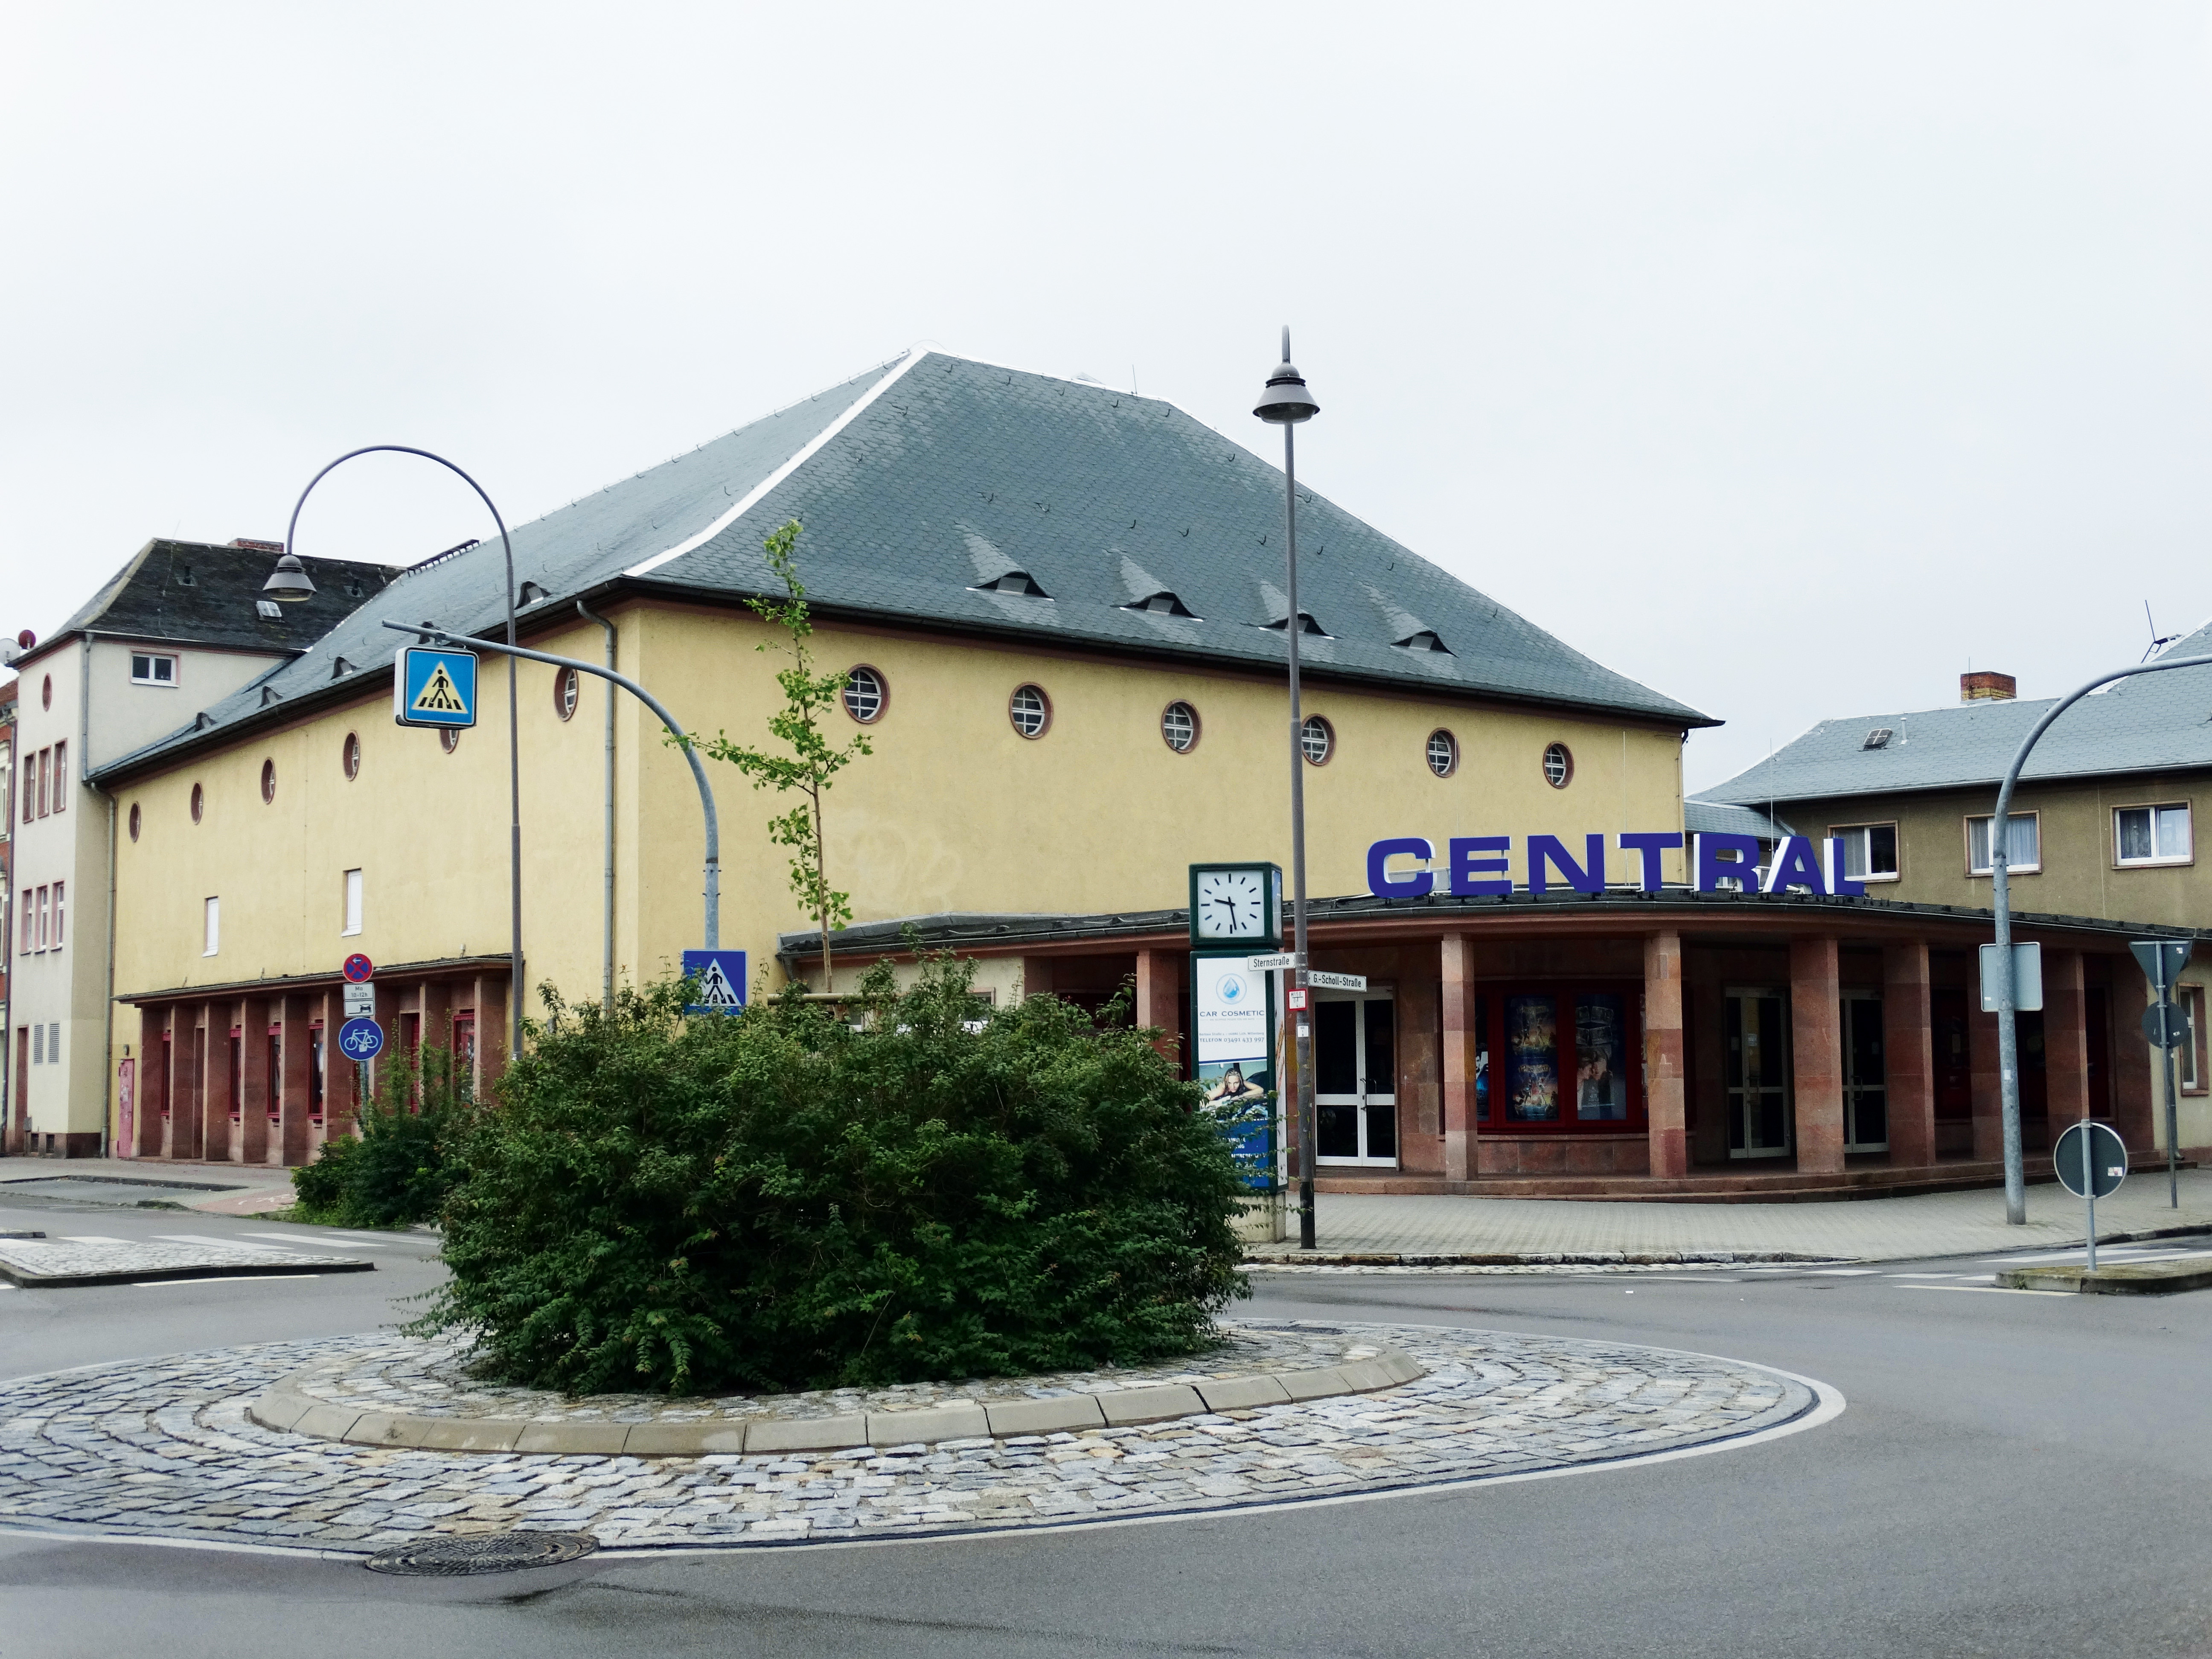 Central-Theater Wittenberg